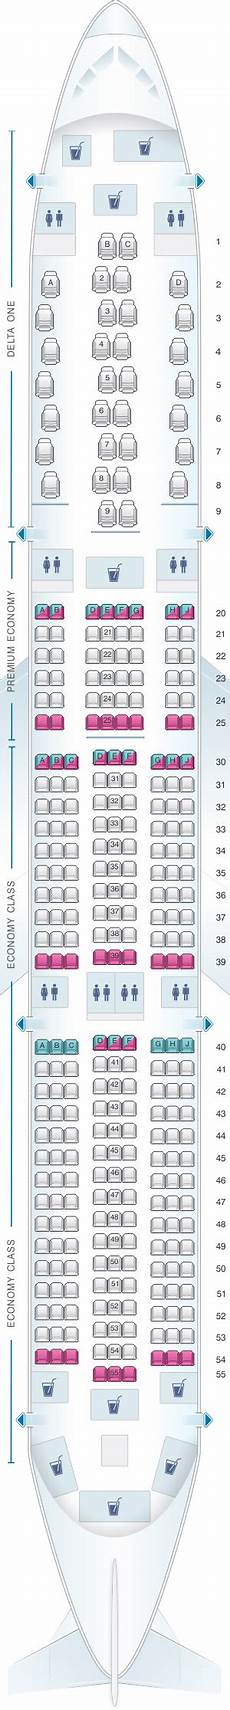 Airbus A350 900 Seating Chart Seat Map Delta Air Lines Airbus A350 900 Seatmaestro